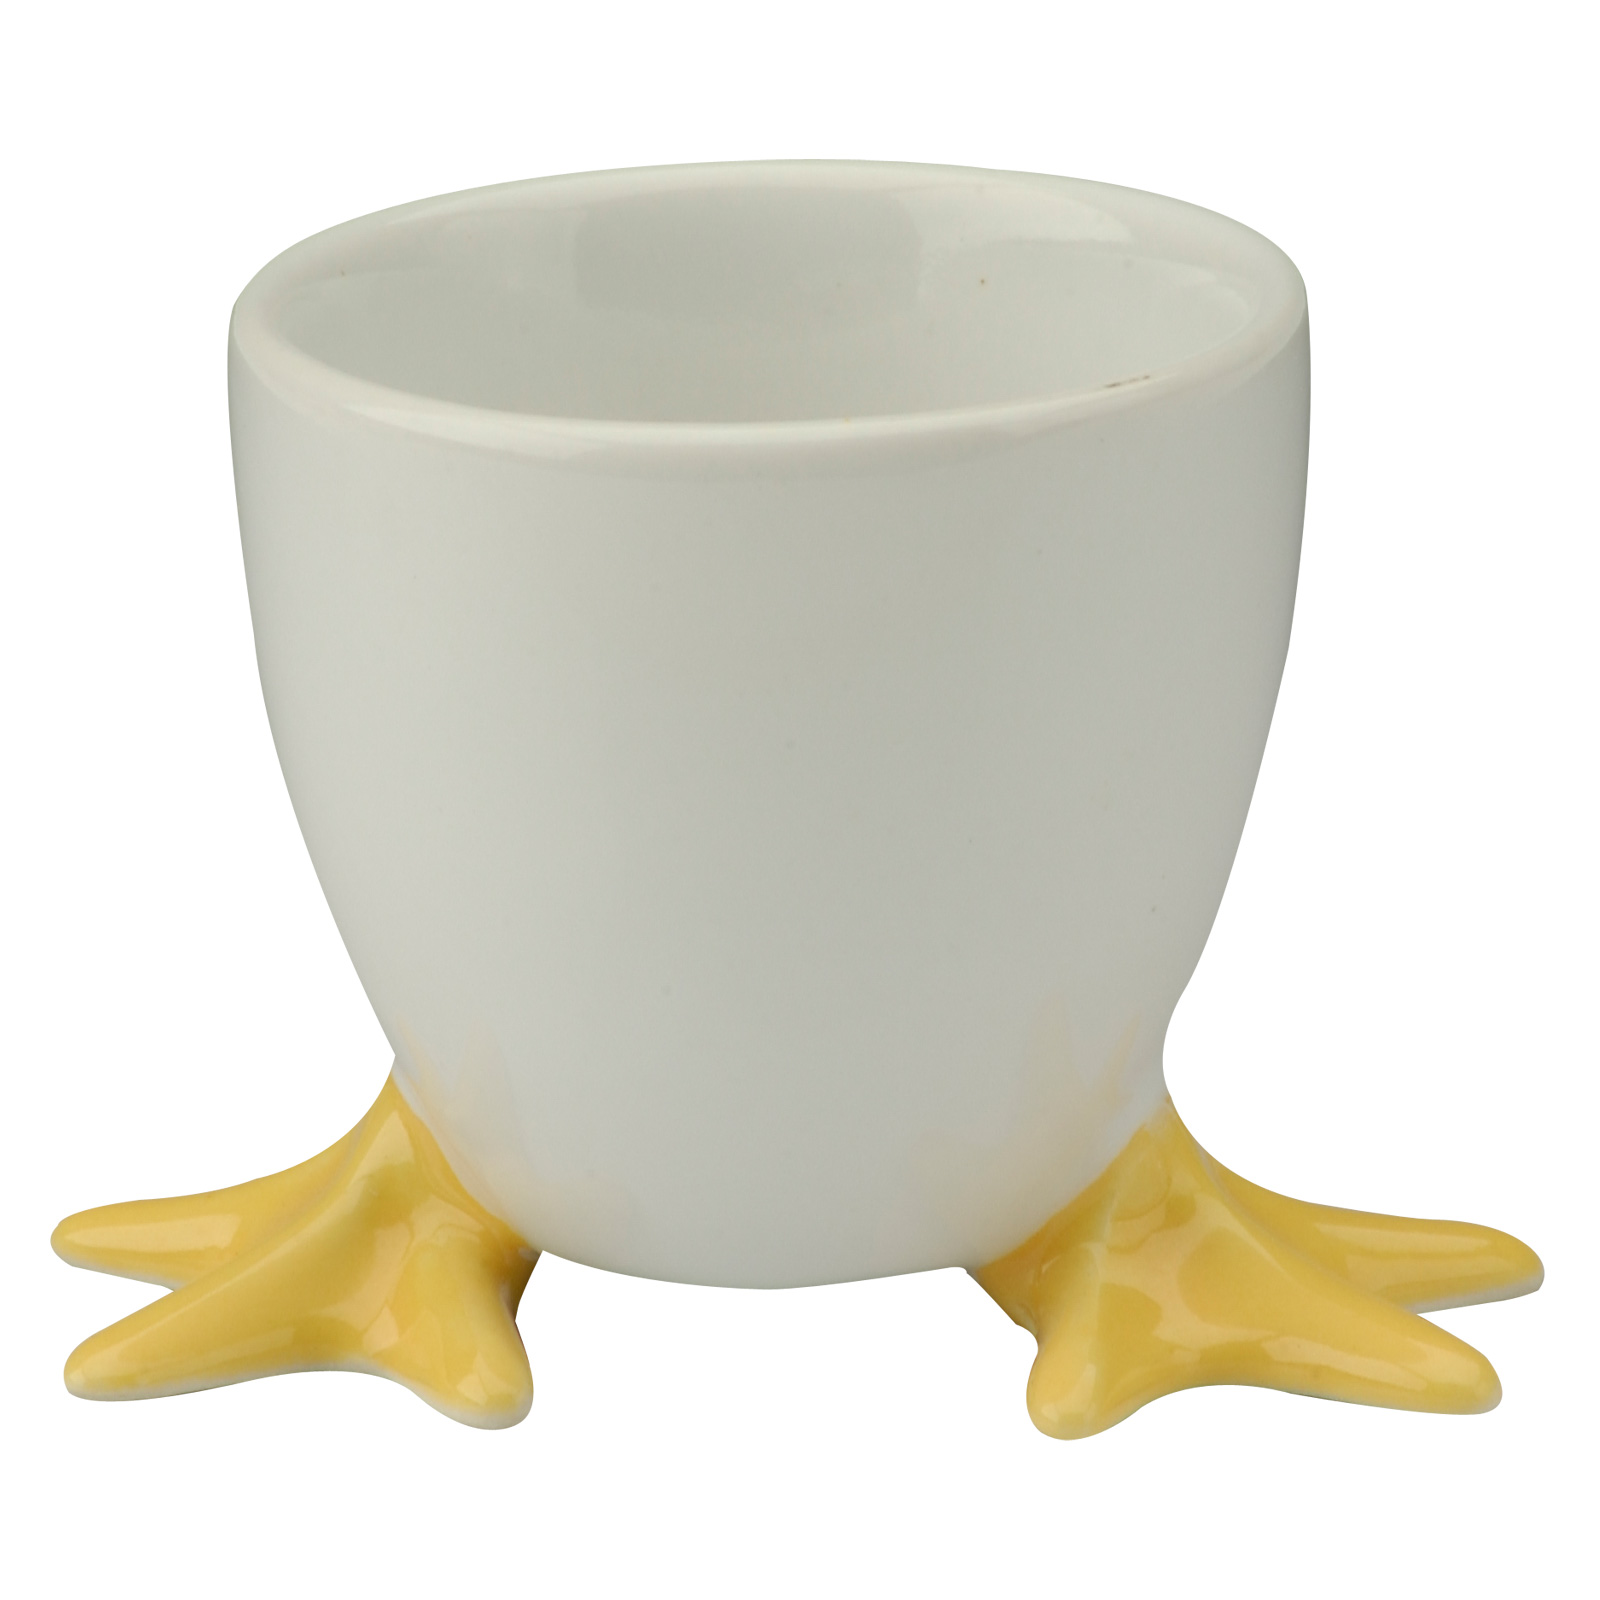 Set of 6 Chicken Feet Egg Cups with Yellow Feet by BIA